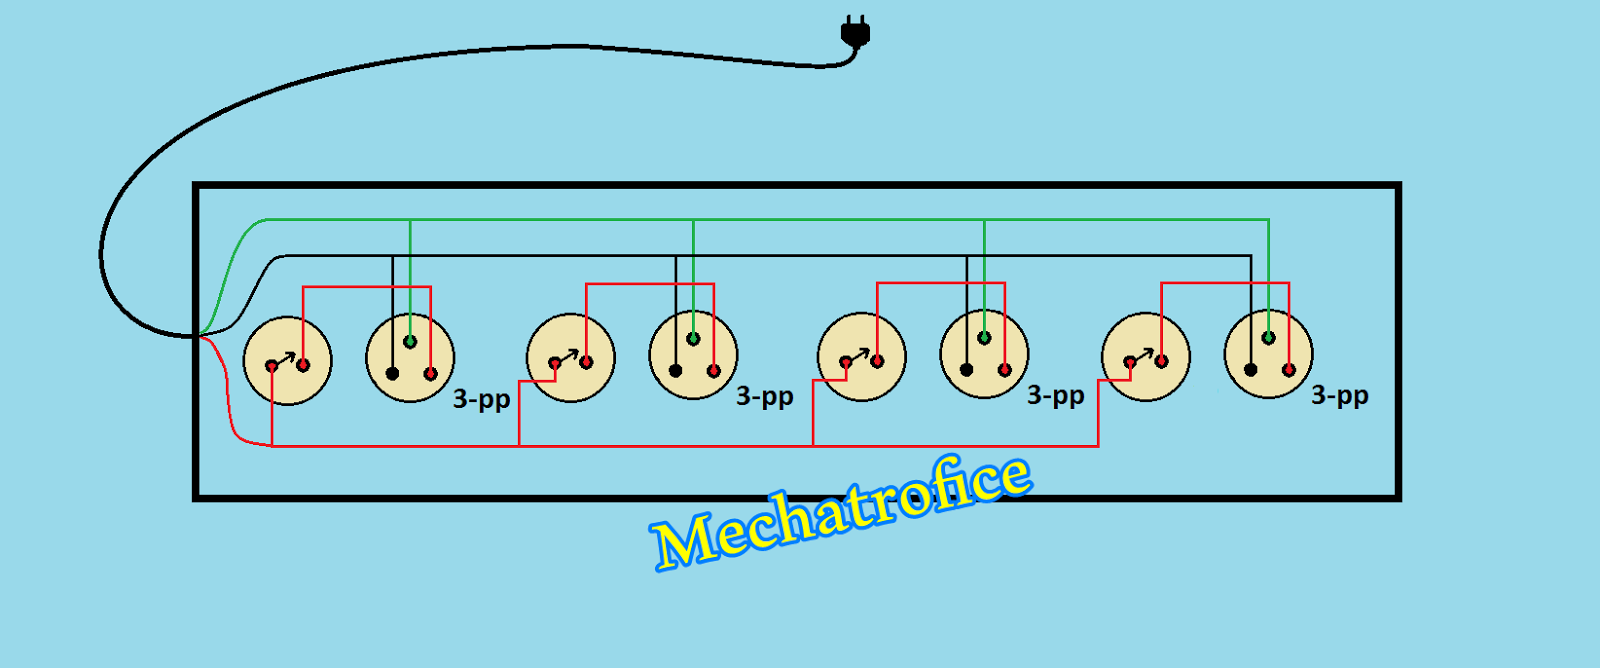 extension+cord+extension+real+circuit+wiring+diagram extension cord wiring diagram mechatrofice electrical cord wiring diagram at mifinder.co